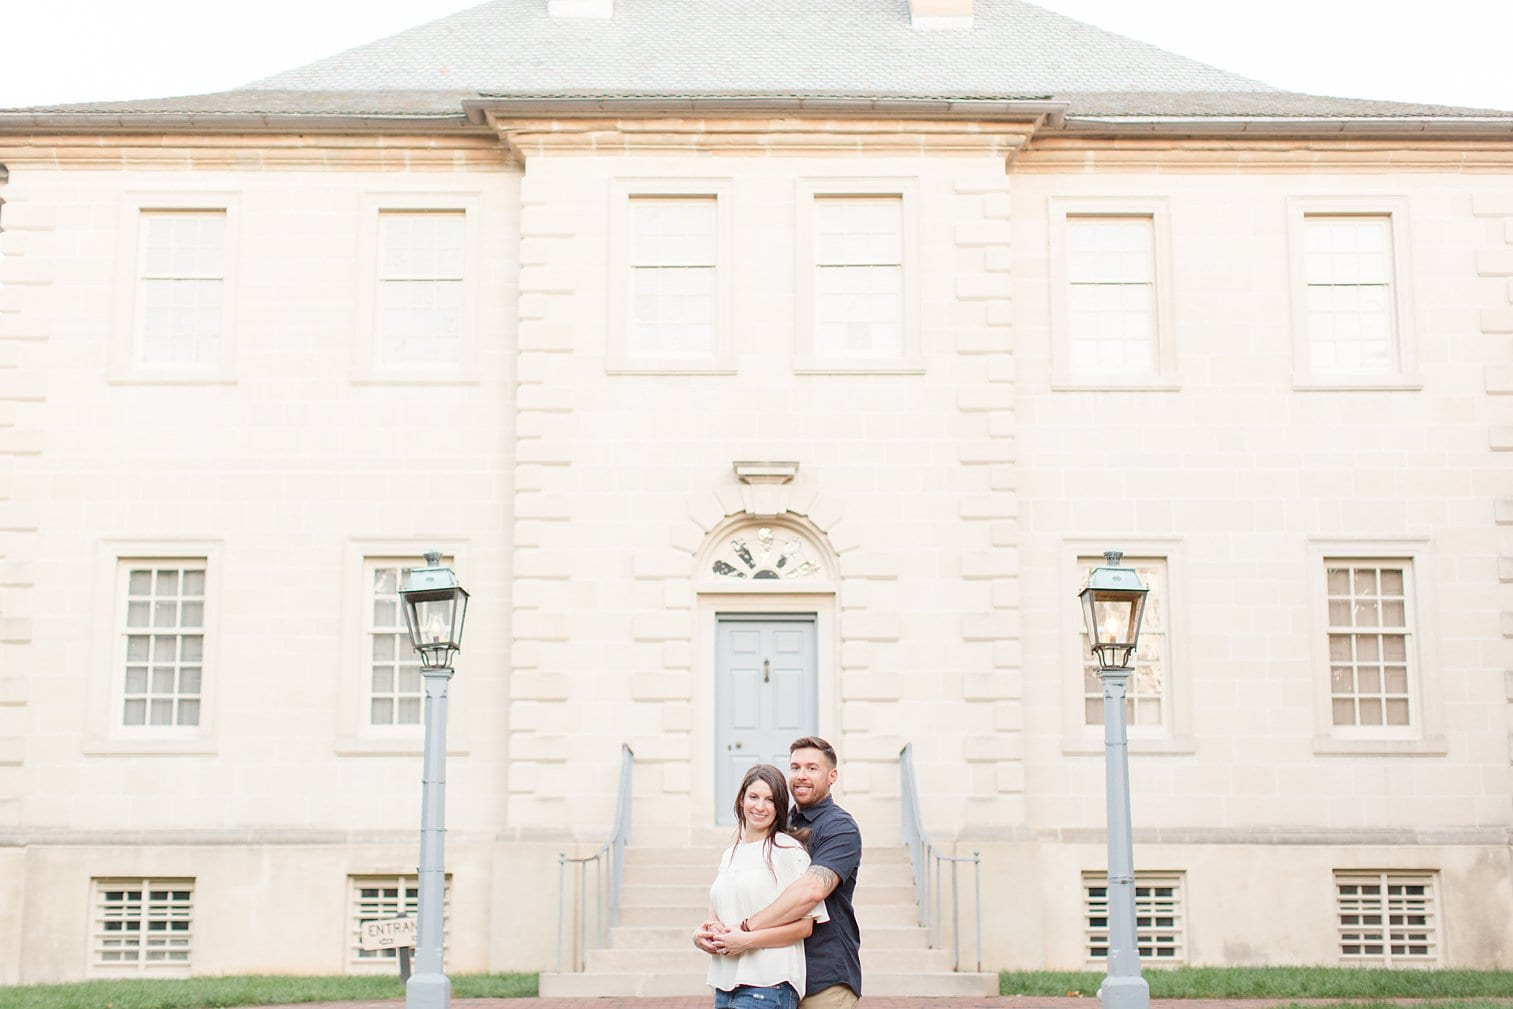 Fall Old Town Alexandria Engagement Photos Megan Kelsey Photography Virginia Wed-0015.jpg